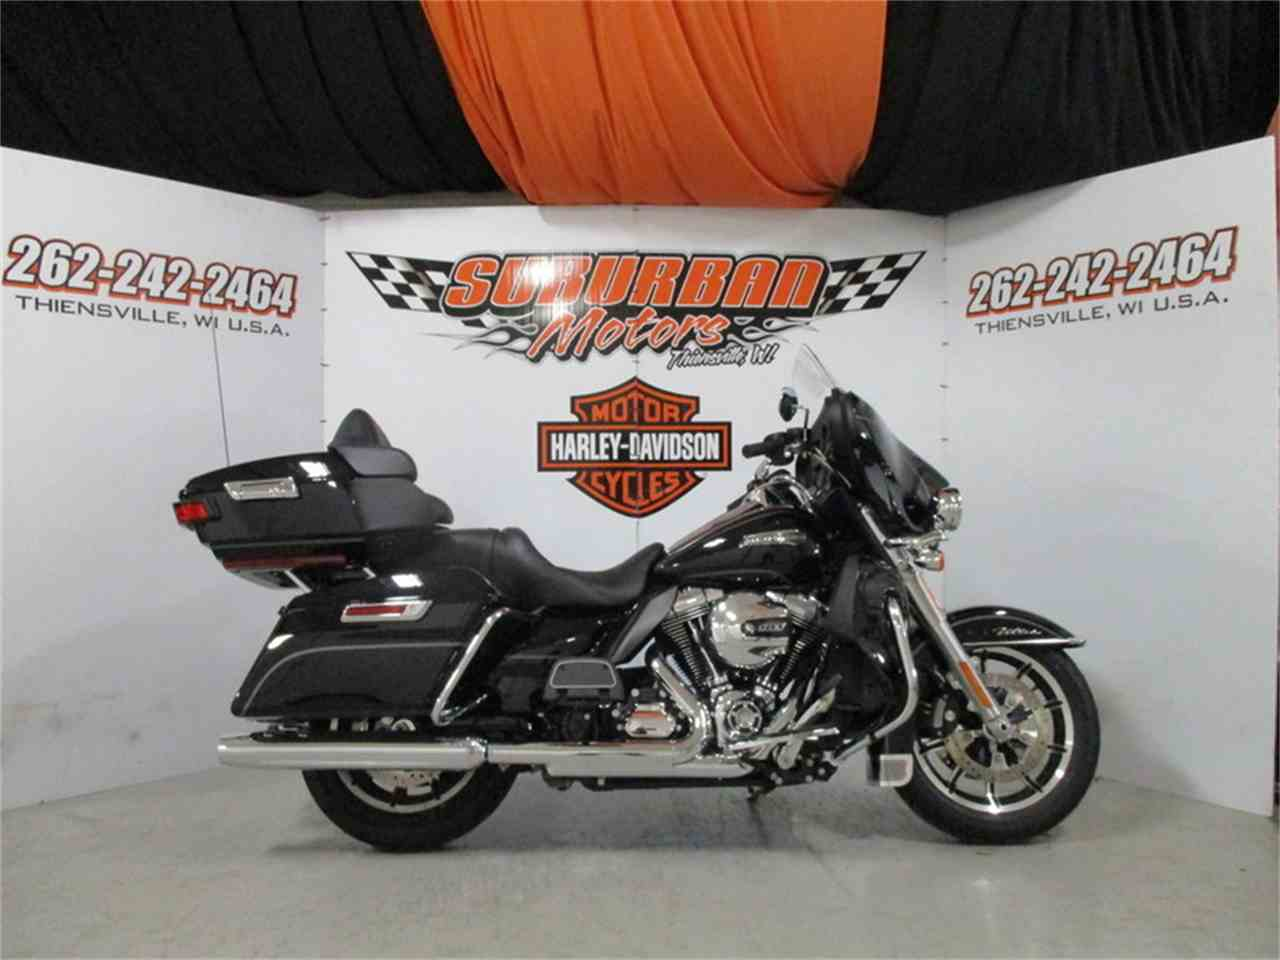 Large Picture of '16 FLHTCU - Electra Glide® Ultra Classic® located in Thiensville Wisconsin - $19,566.00 - M9EU